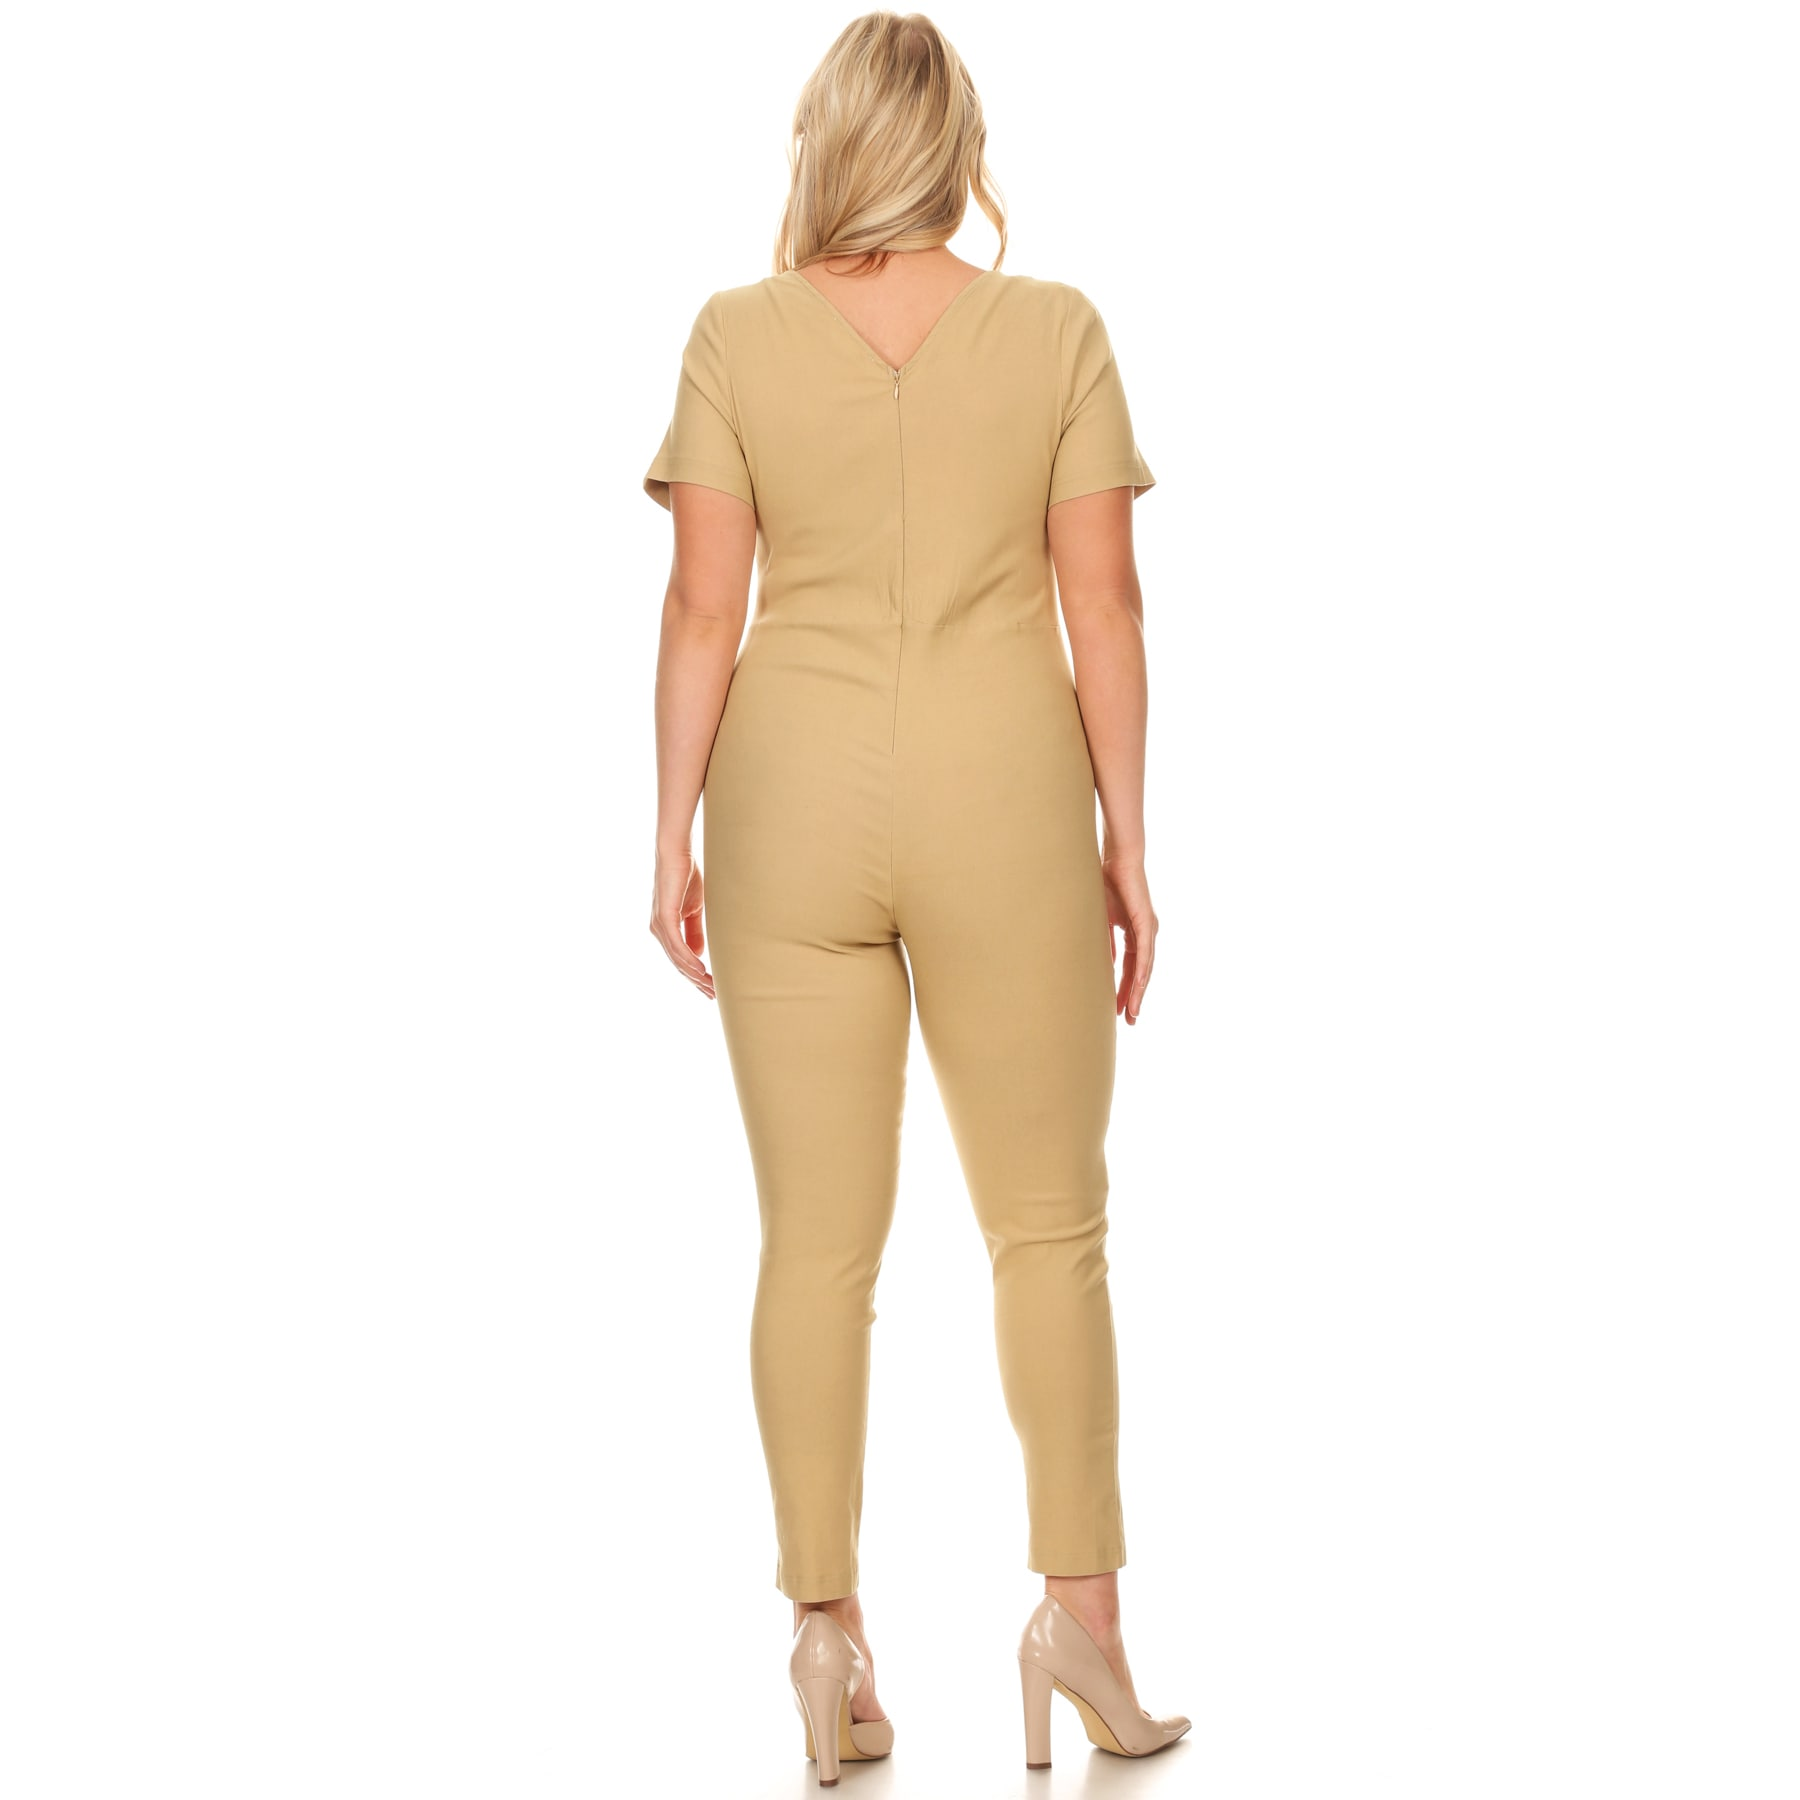 63fe855c373 Shop Xehar Women s Plus Size Slimming V-Neck Button Jumpsuit Playsuit -  Free Shipping On Orders Over  45 - Overstock.com - 15867104